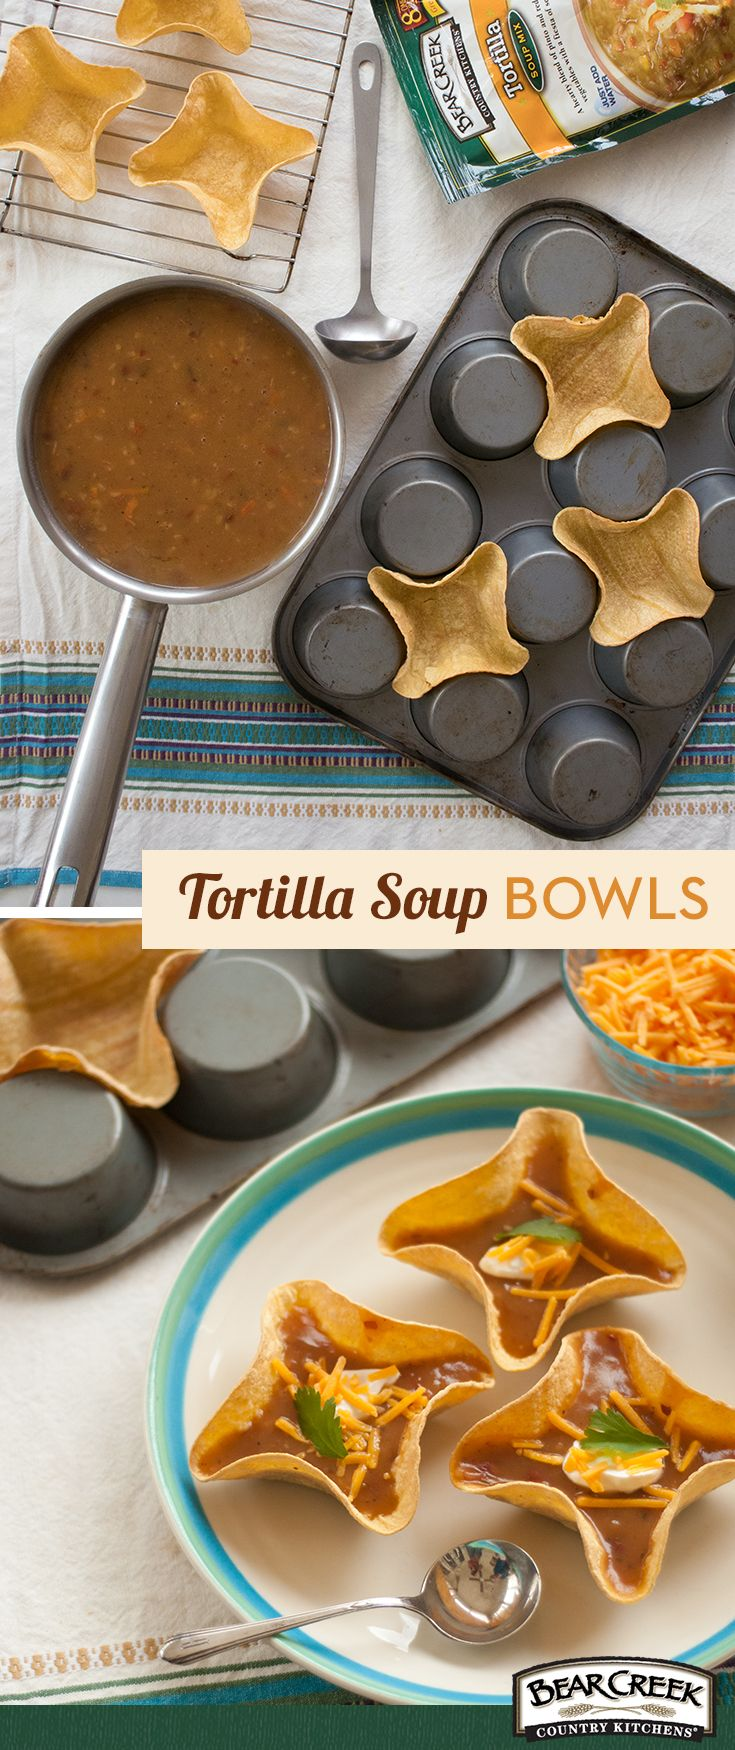 Get creative next time you are serving tortilla soup this